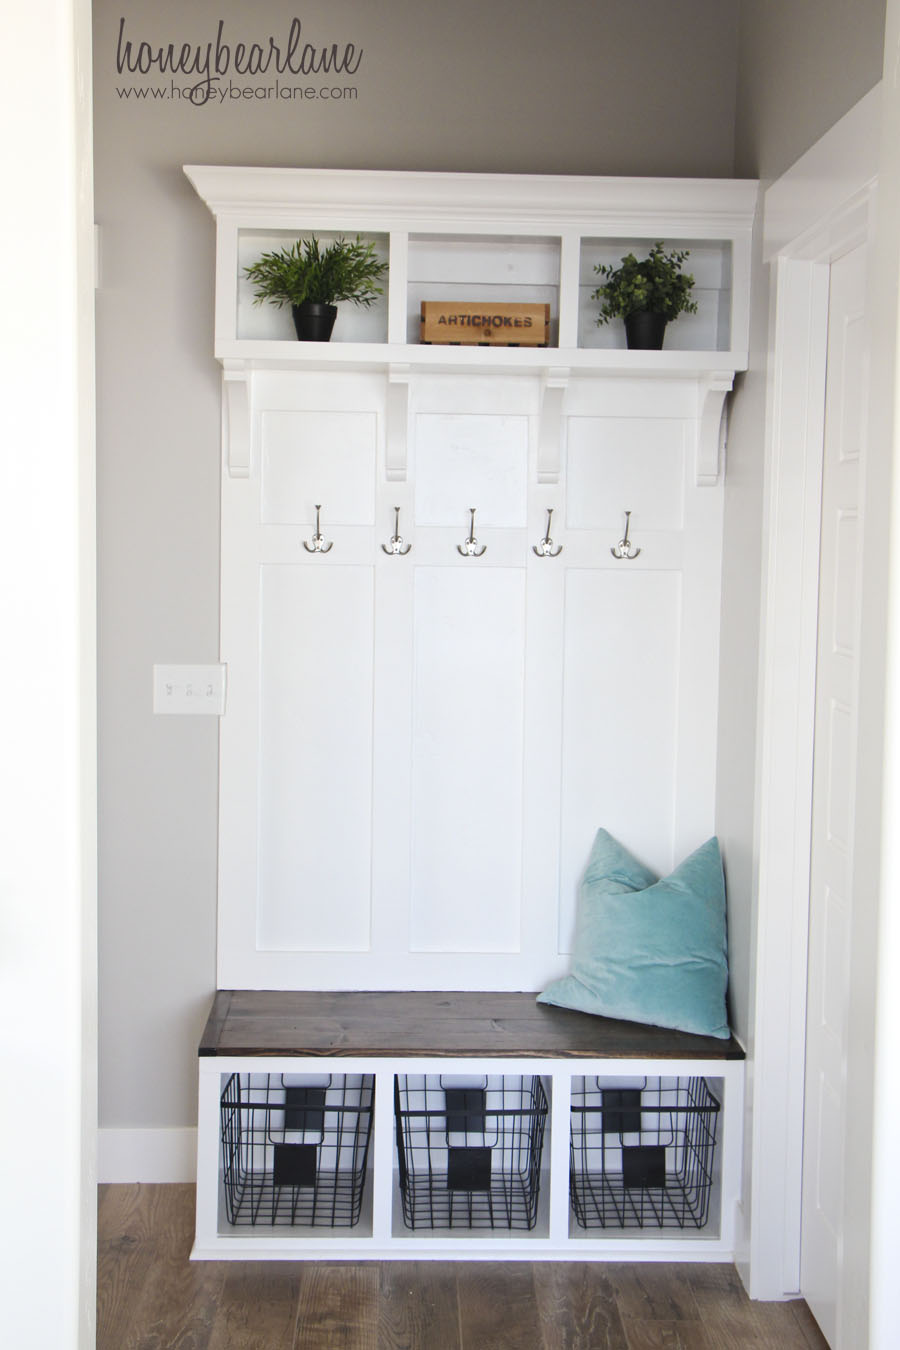 Astonishing Diy Mudroom Bench Part 2 Honeybear Lane Squirreltailoven Fun Painted Chair Ideas Images Squirreltailovenorg